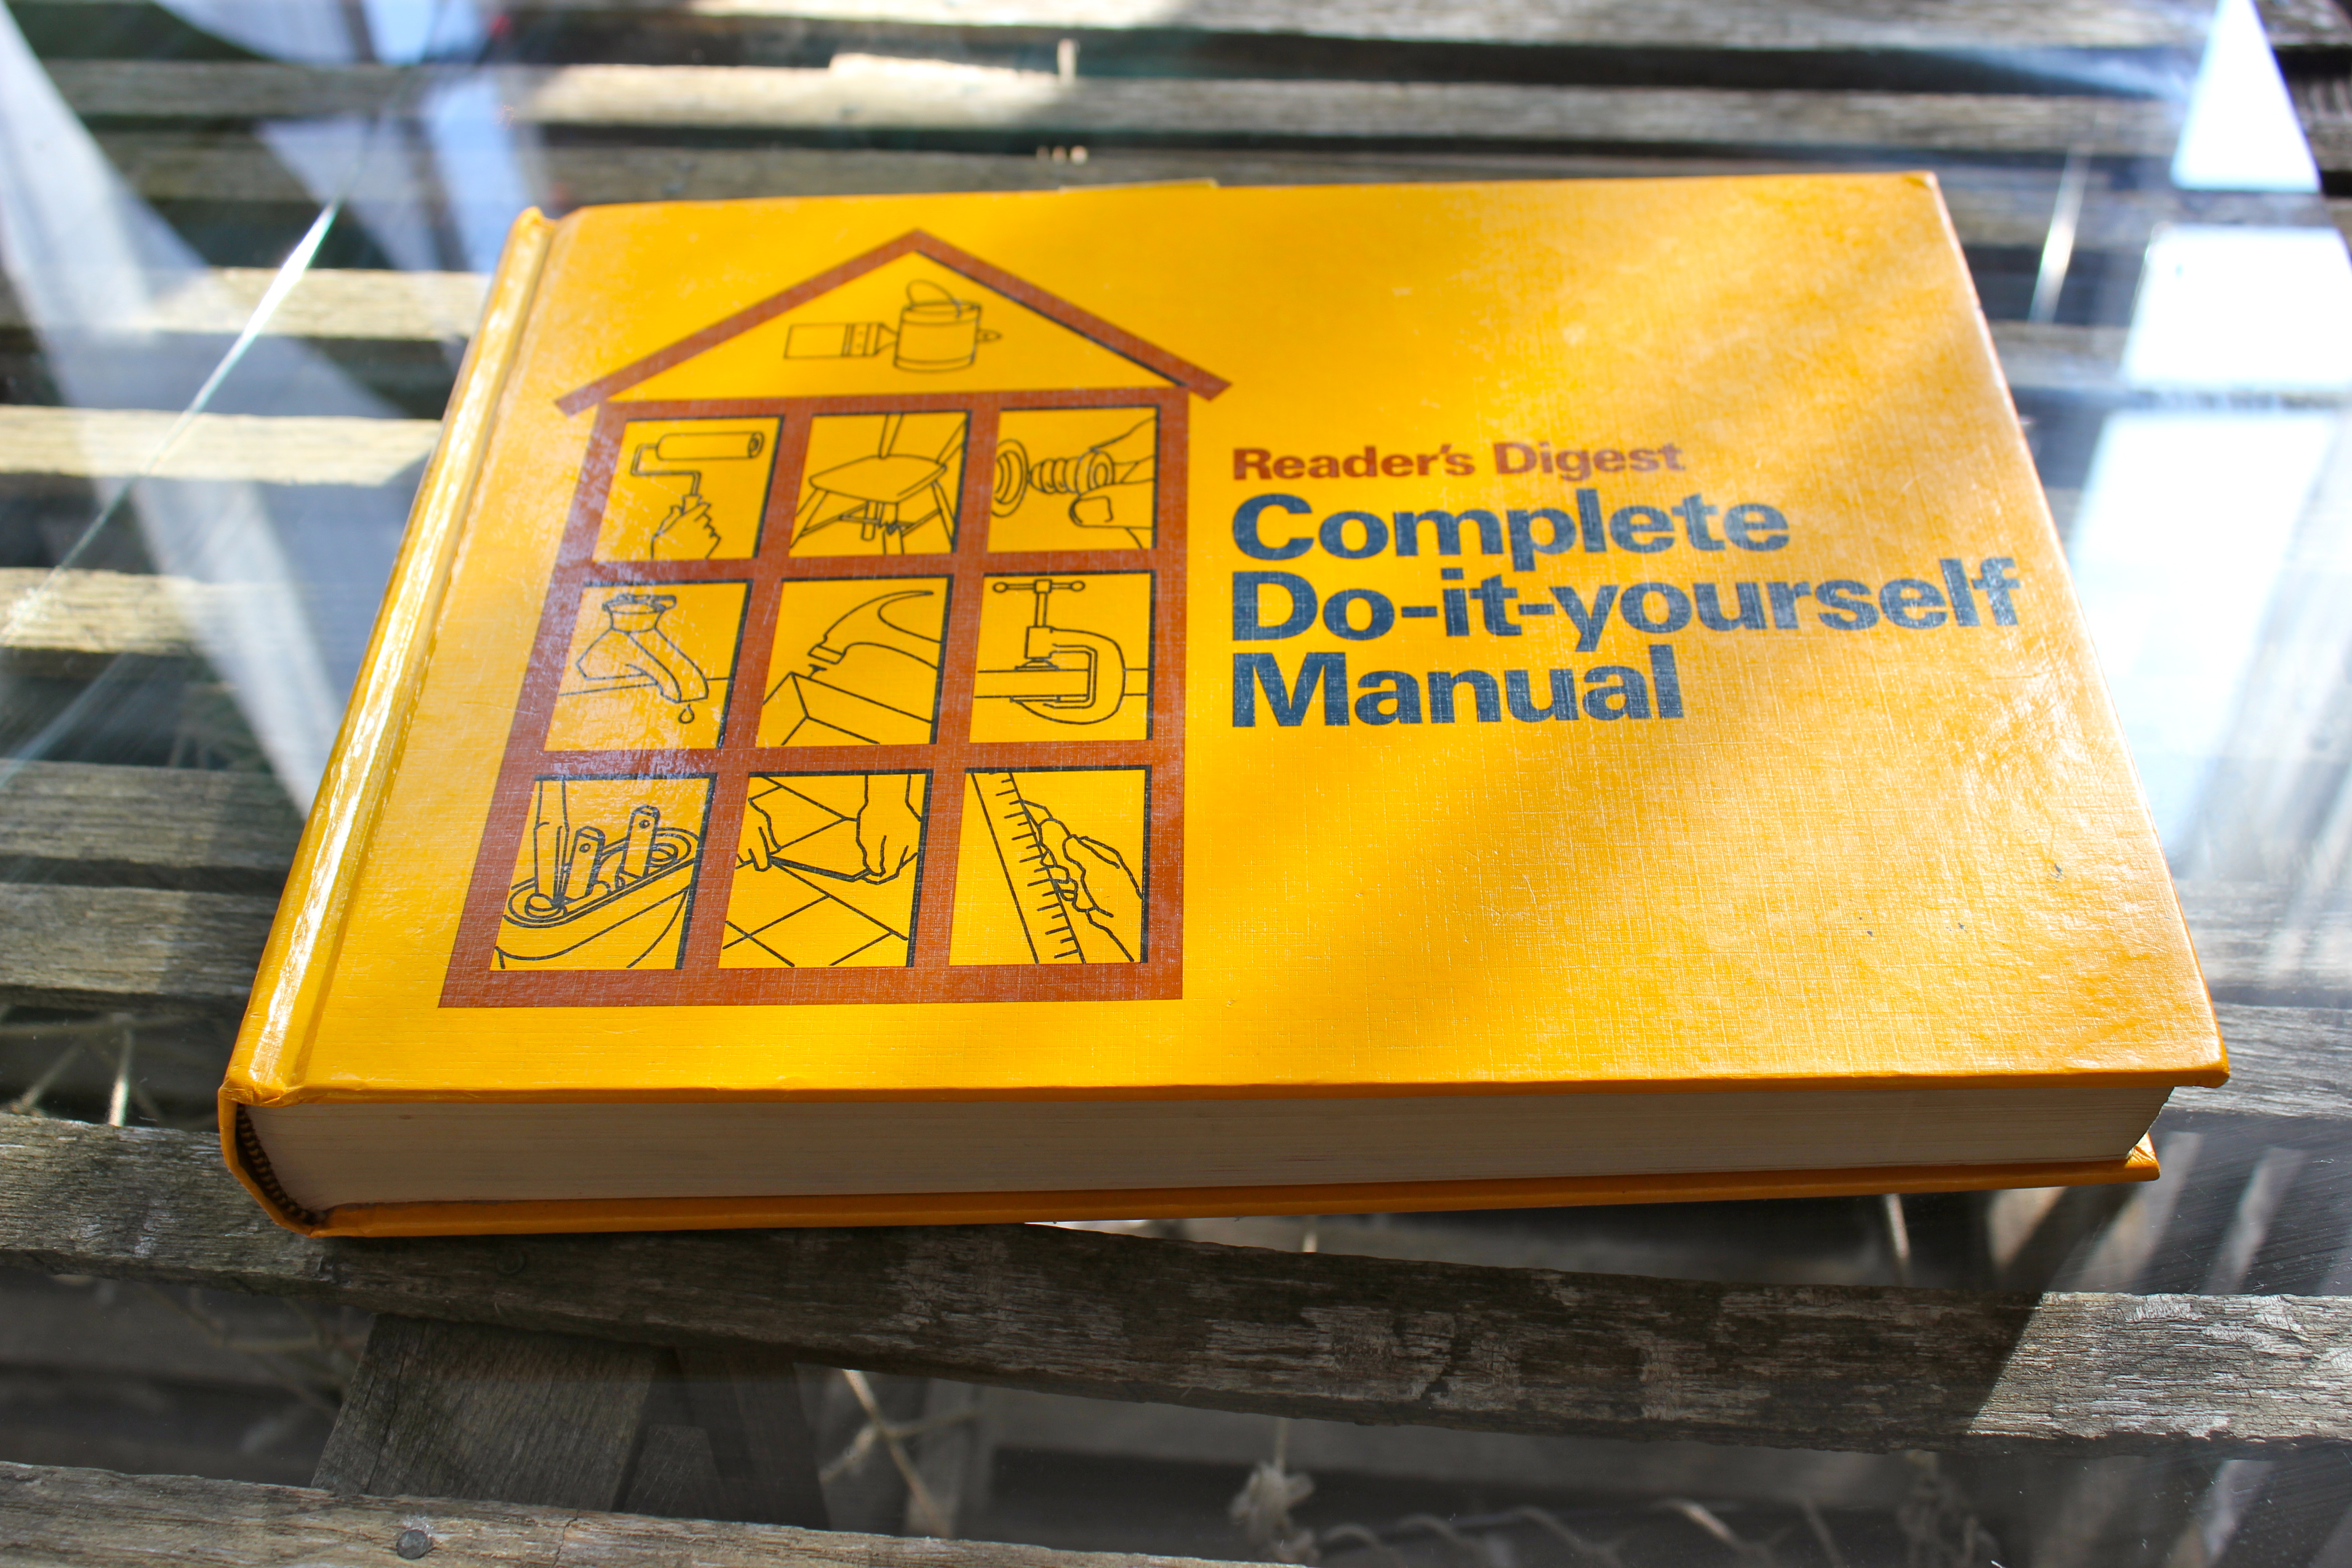 Readers digest complete do it yourself manual niftythriftygoodwill different solutioingenieria Choice Image